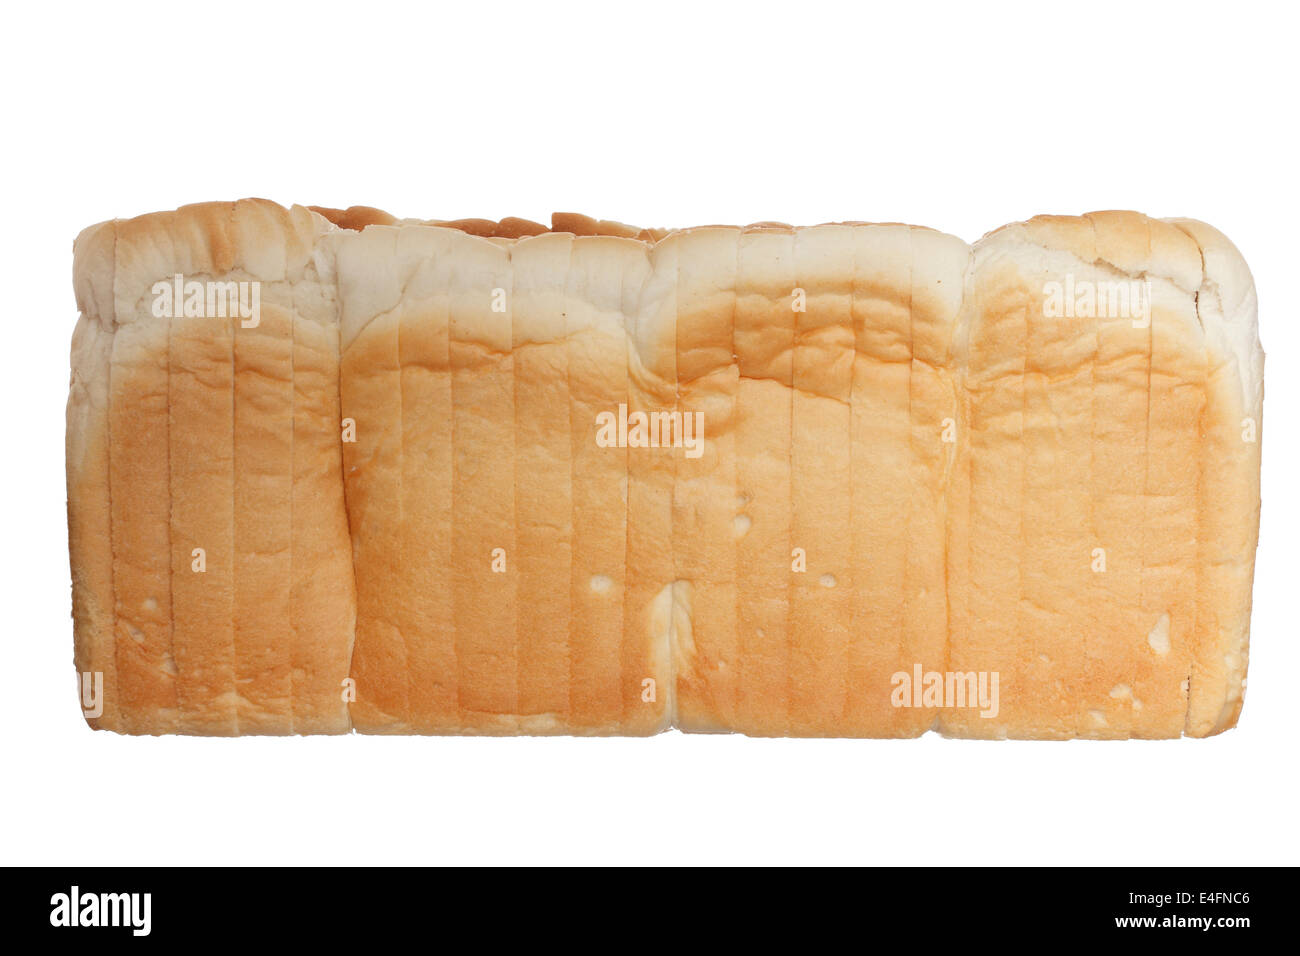 Photography of bread isolated on white background - Stock Image